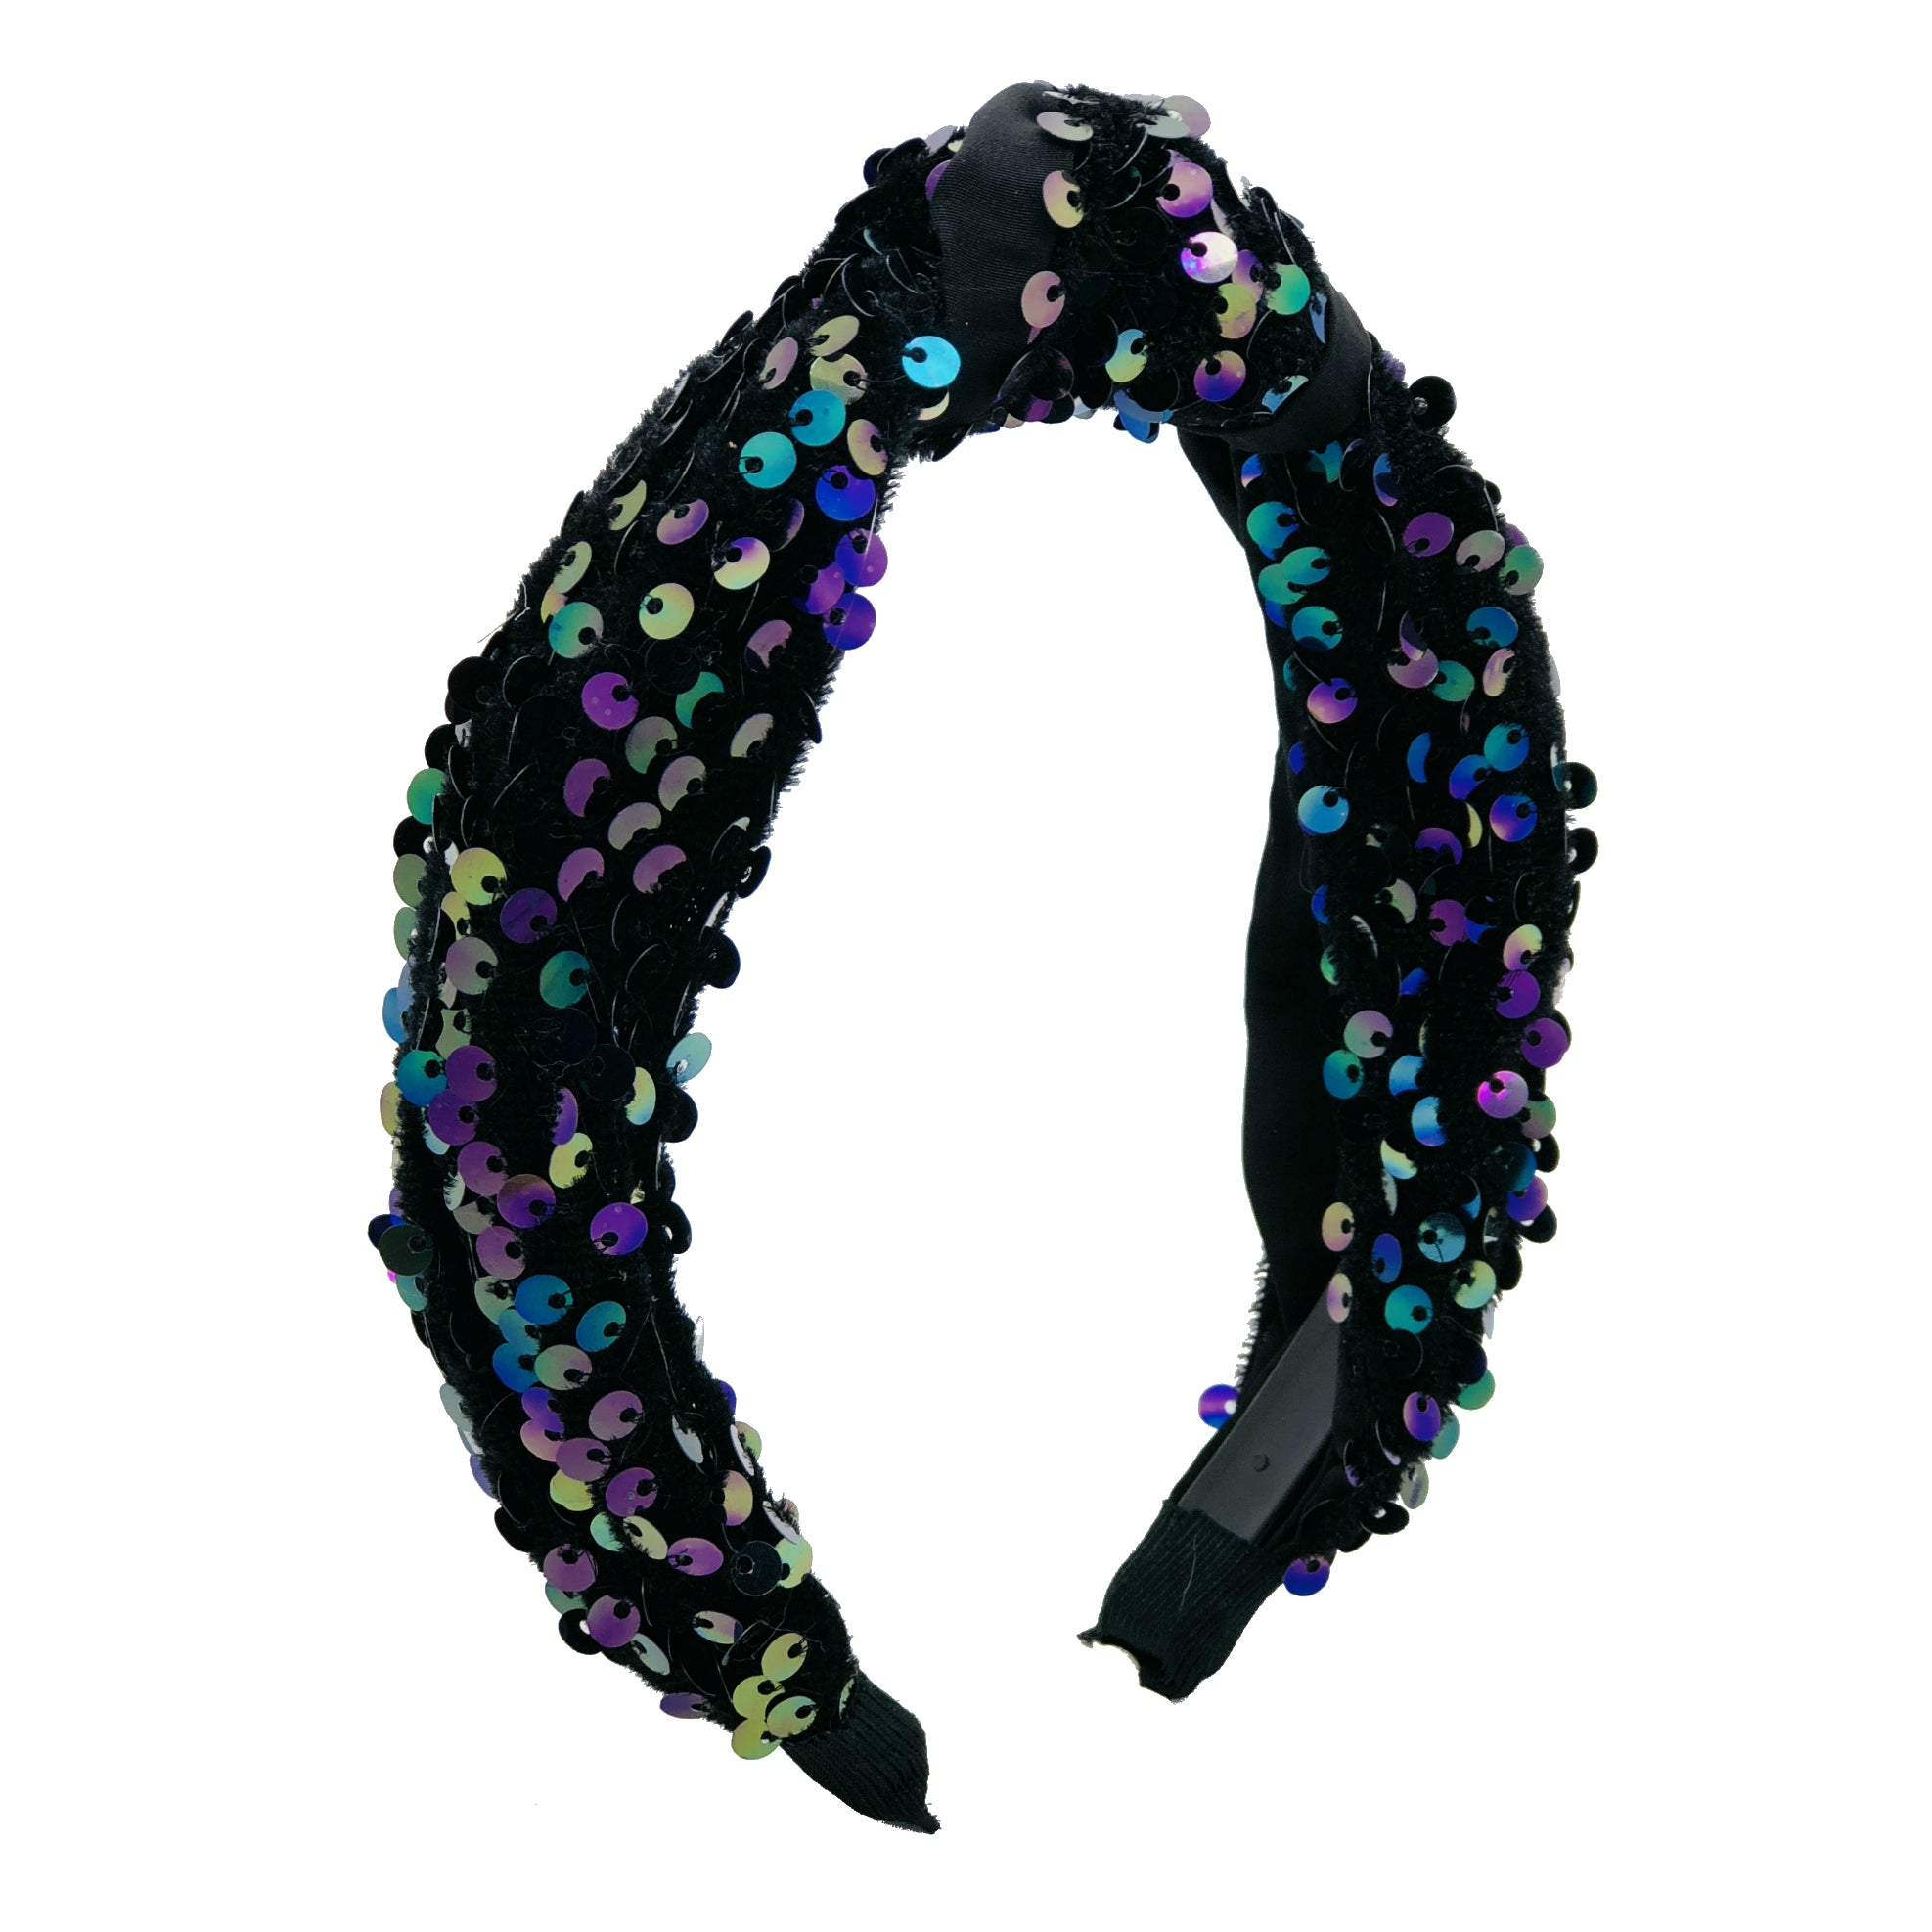 Hair band accessory knot style colourful sequins winter colours